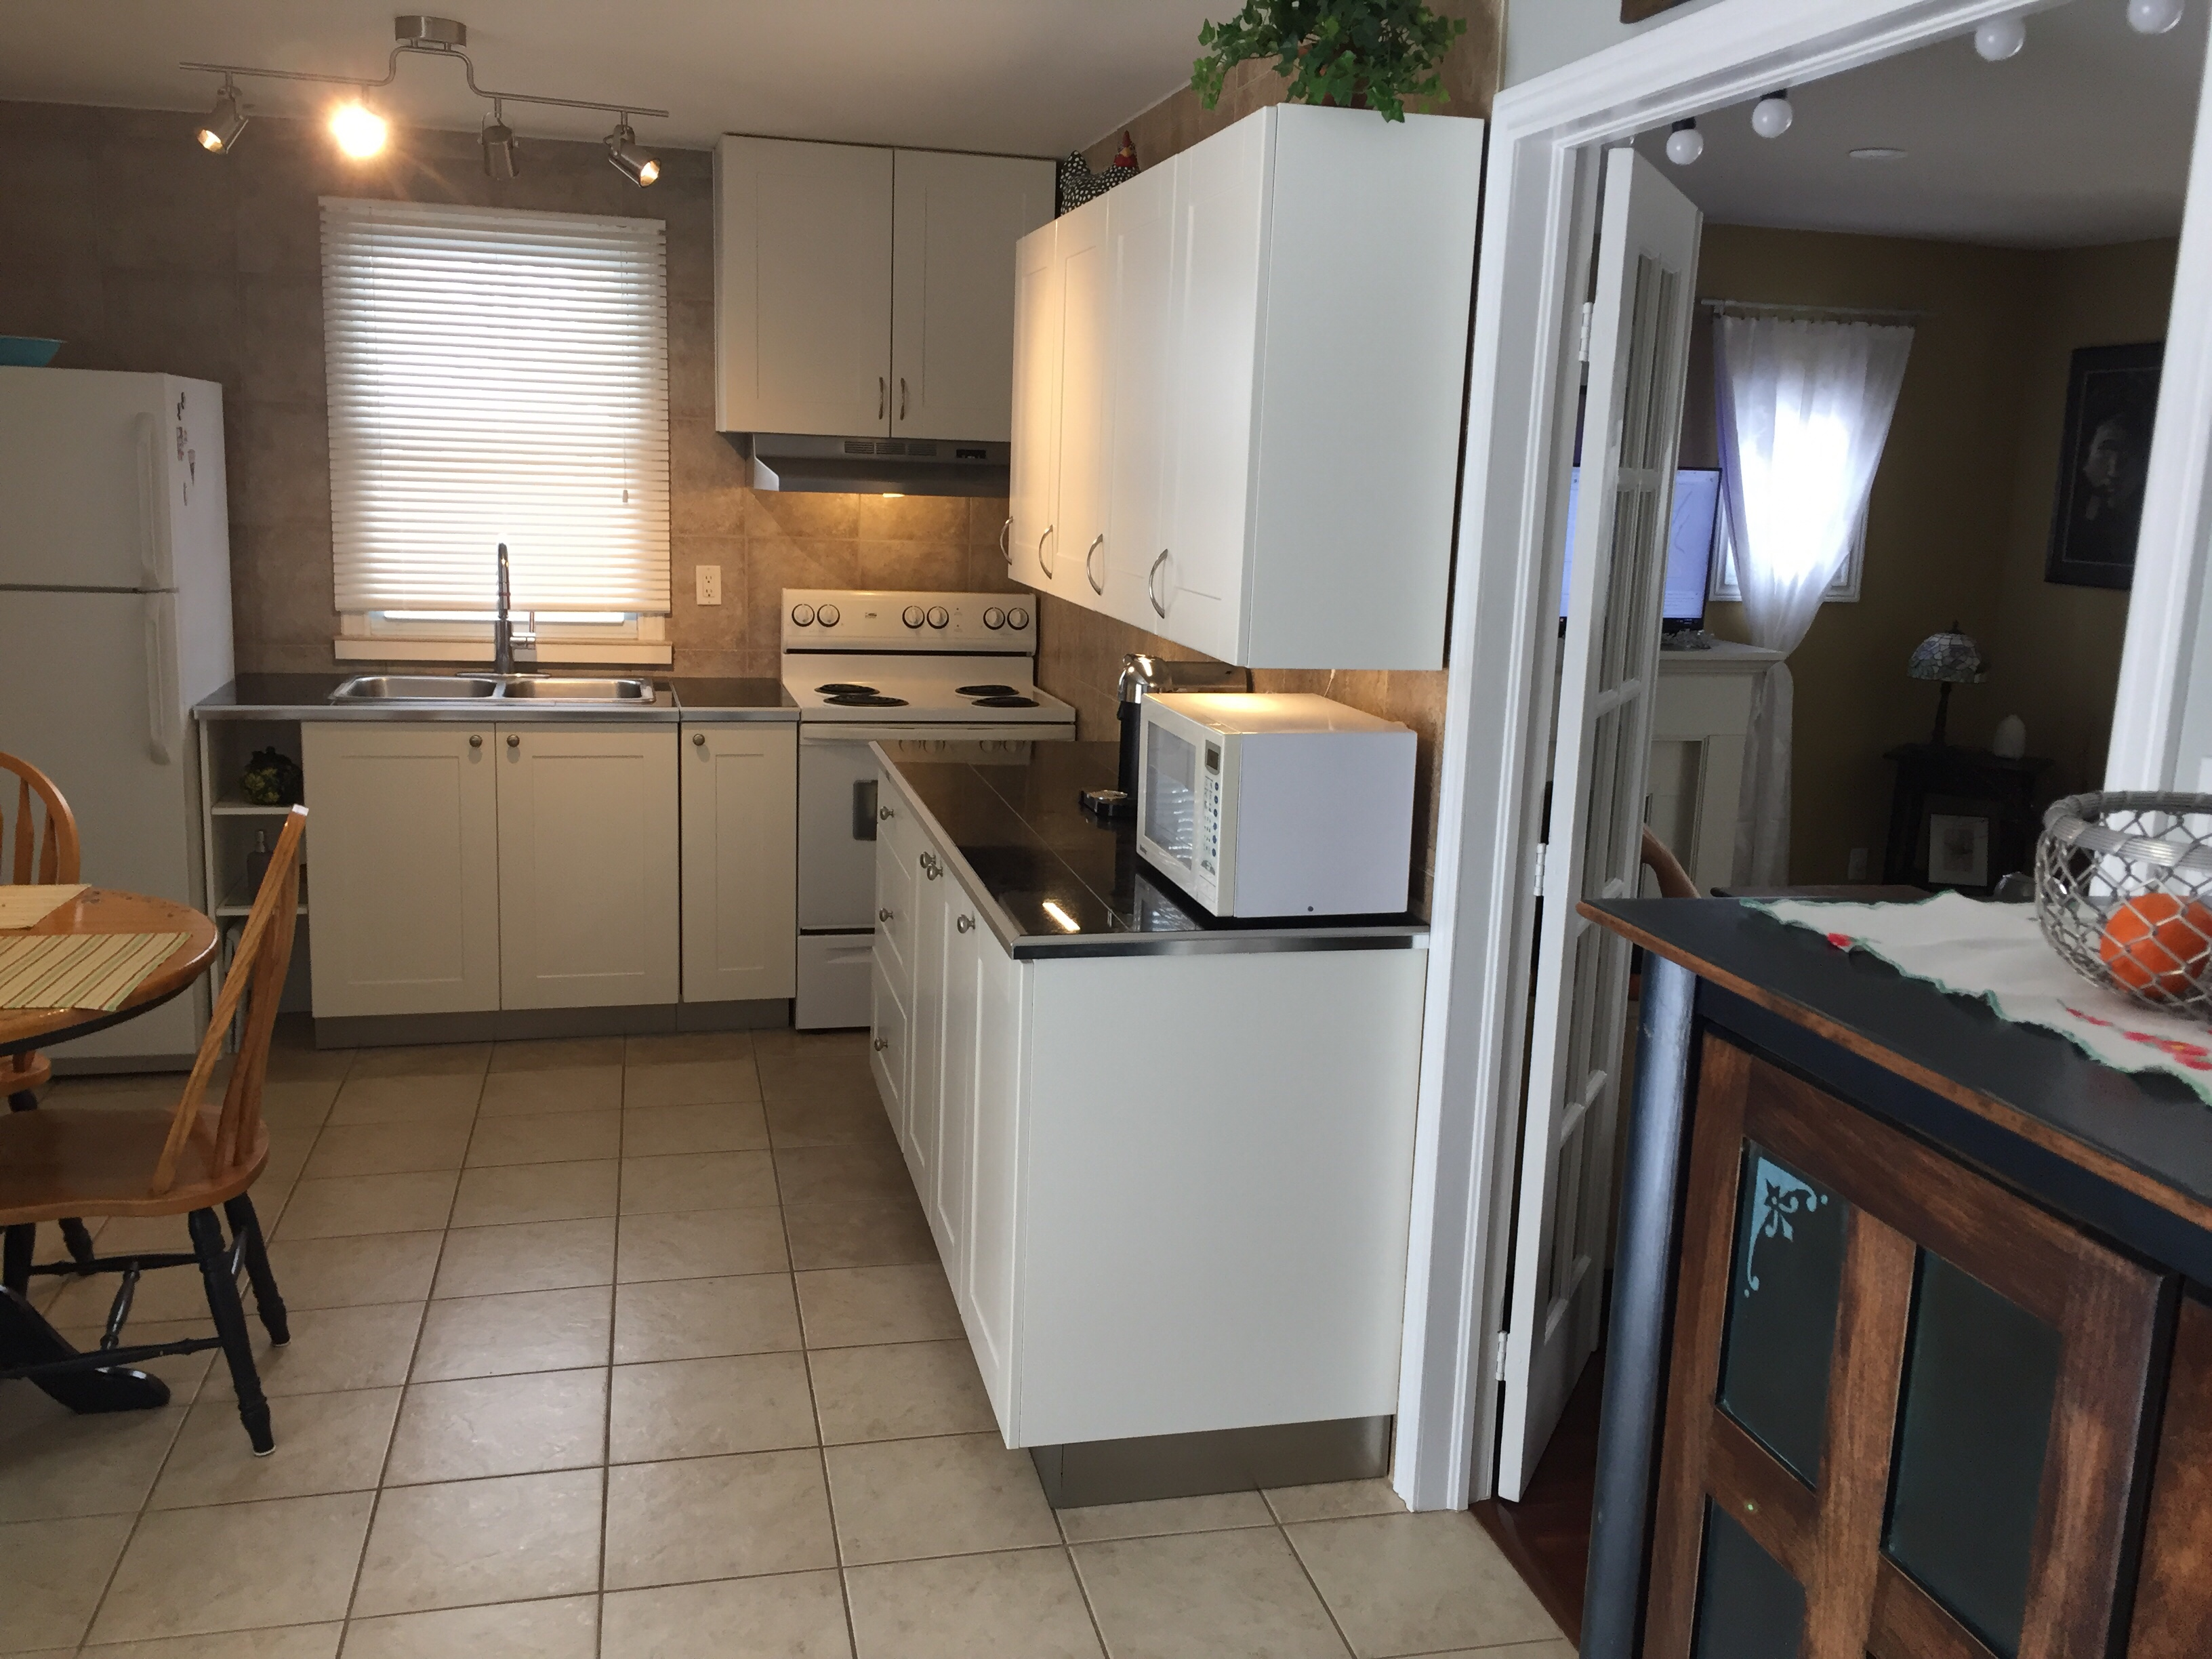 guy rentals with miles orng ontario offers all cottage tab wasaga the public cottages broad beach sandy amenities of shirt seven daytrip companion sable sauble